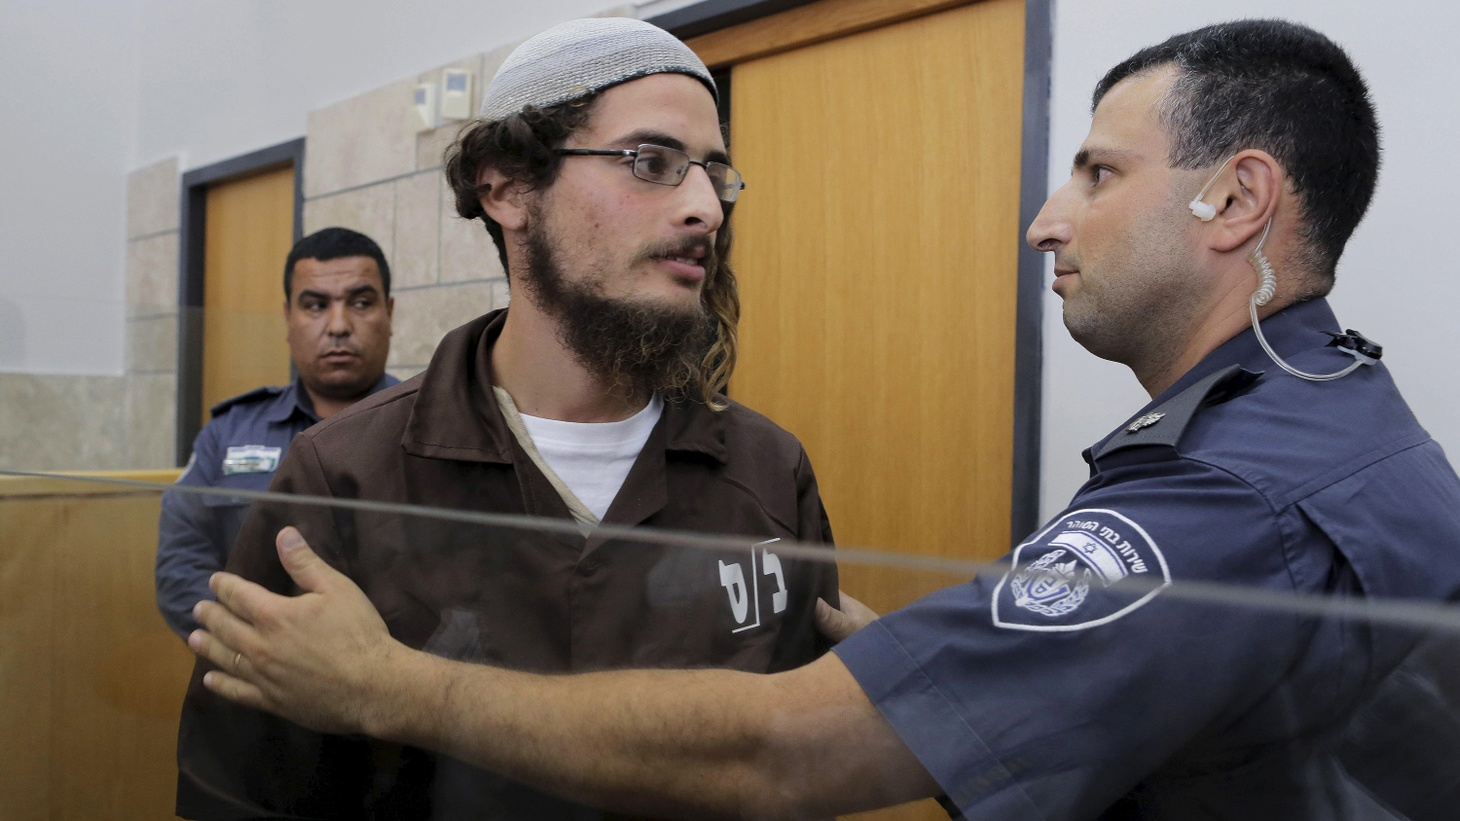 Palestinian terrorists are not the only threat to Israeli security. Jewish terrorists also pose serious risks to national unity and stability. Recent atrocities have increased fear that the government may be powerless against right-wing extremism.